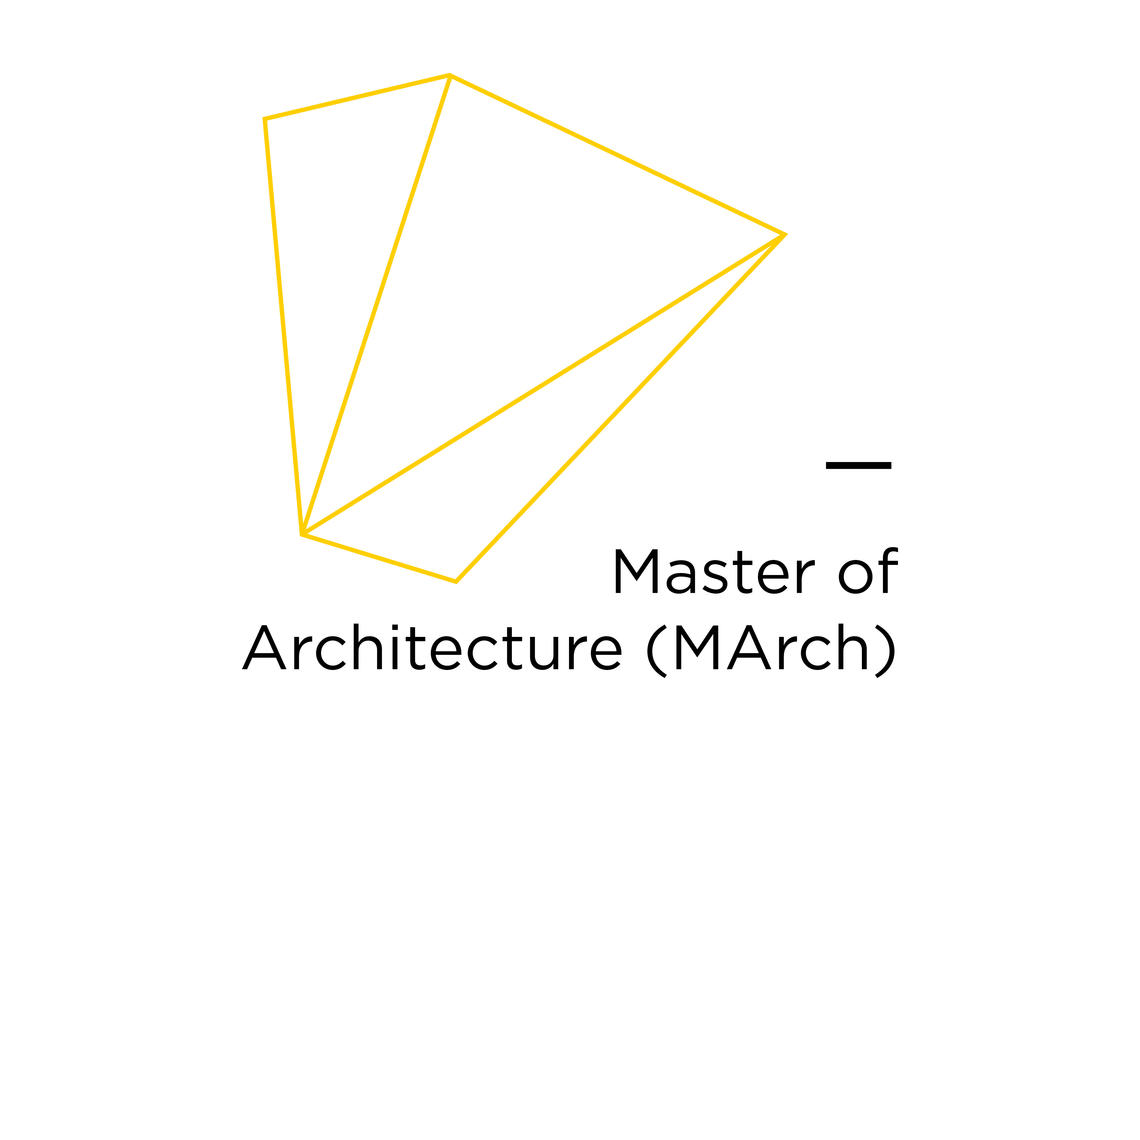 Master of Architecture (MArch)